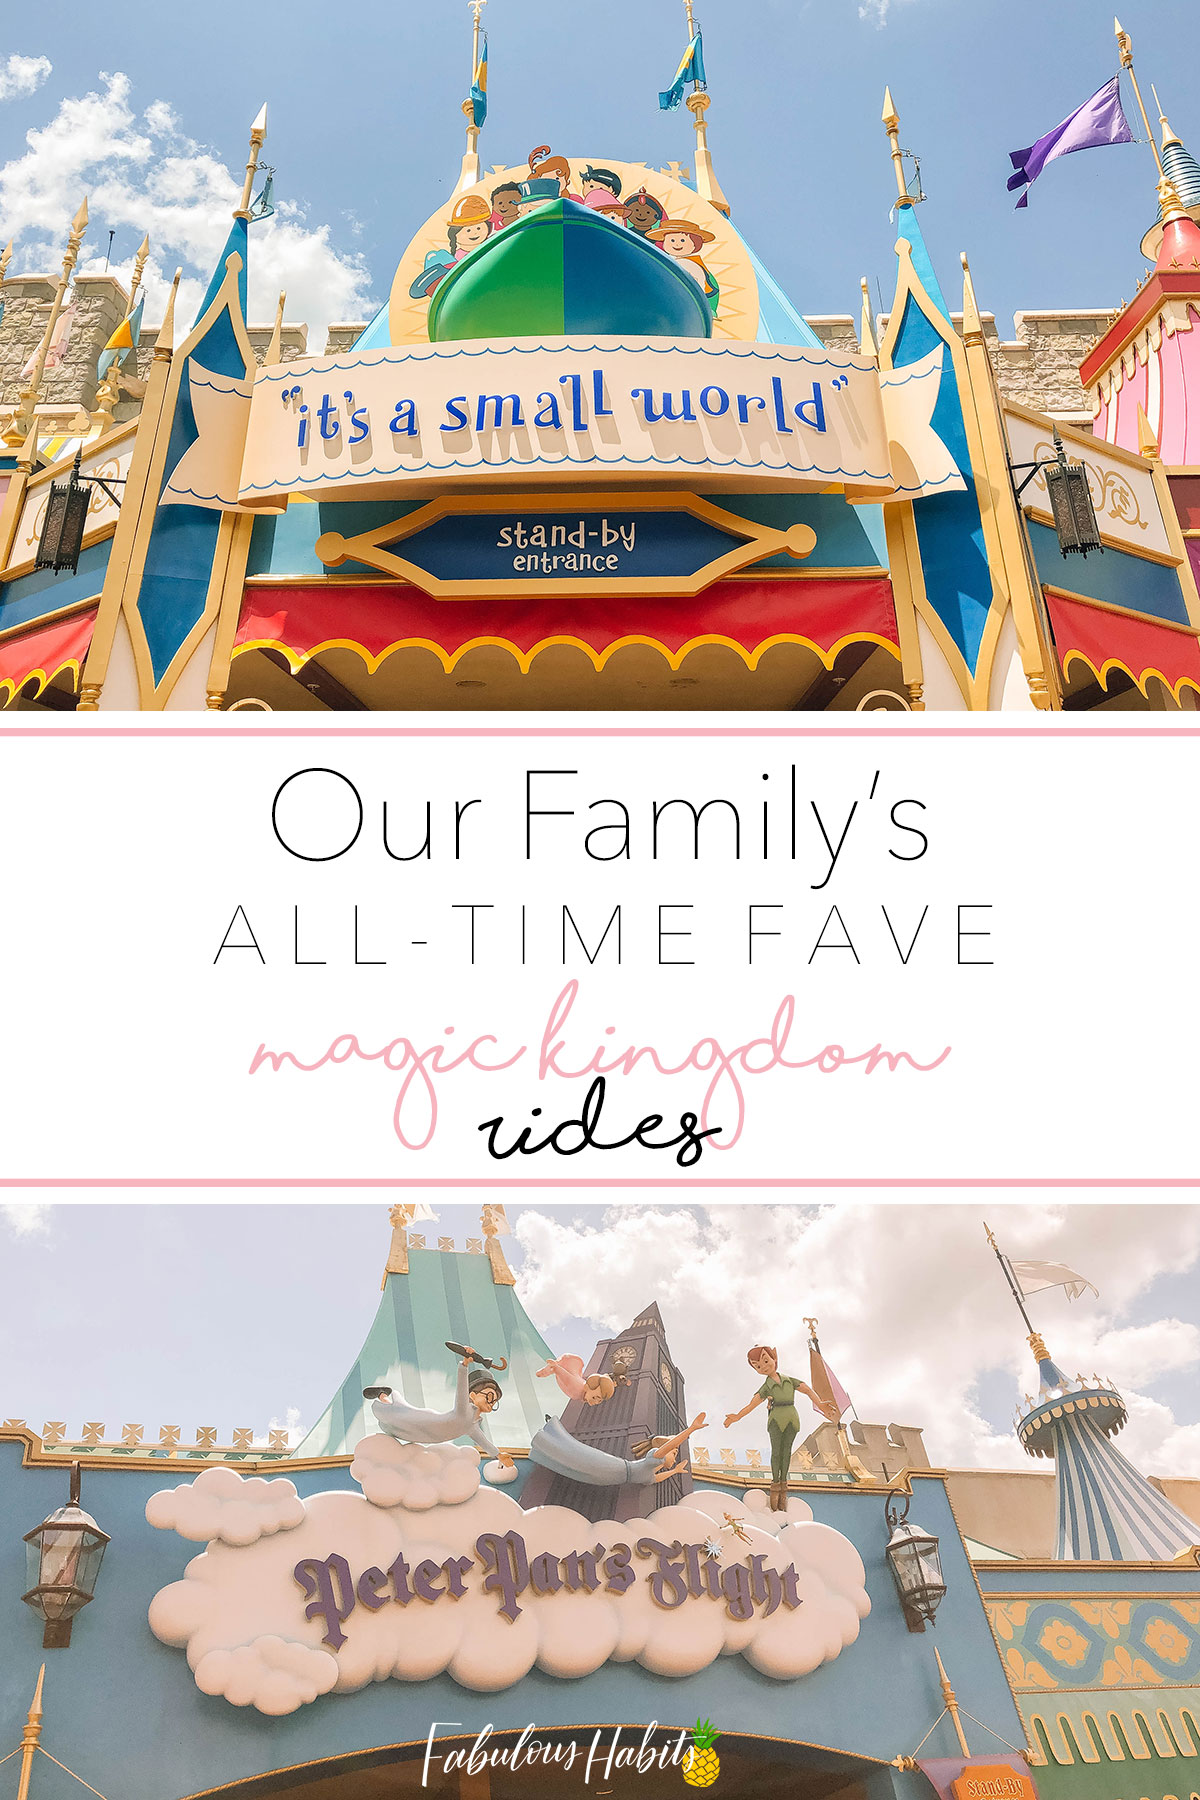 These rides at Magic Kingdom are totally perfect for your toddlers! Here's to a thrillin' good time at WDW for the entire family! #DisneyTips